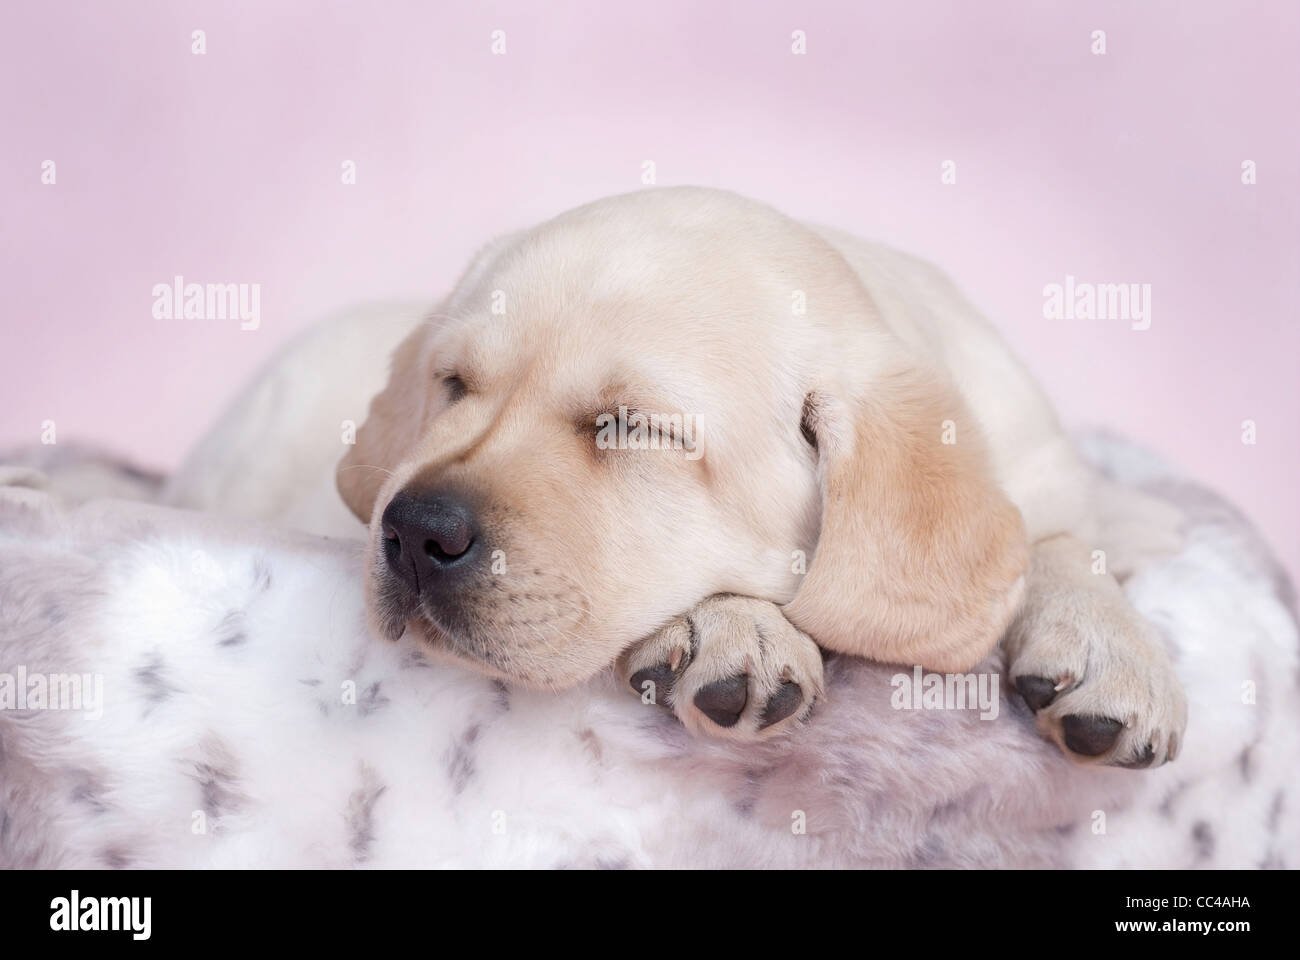 Sleeping labrador puppy at pink background - Stock Image